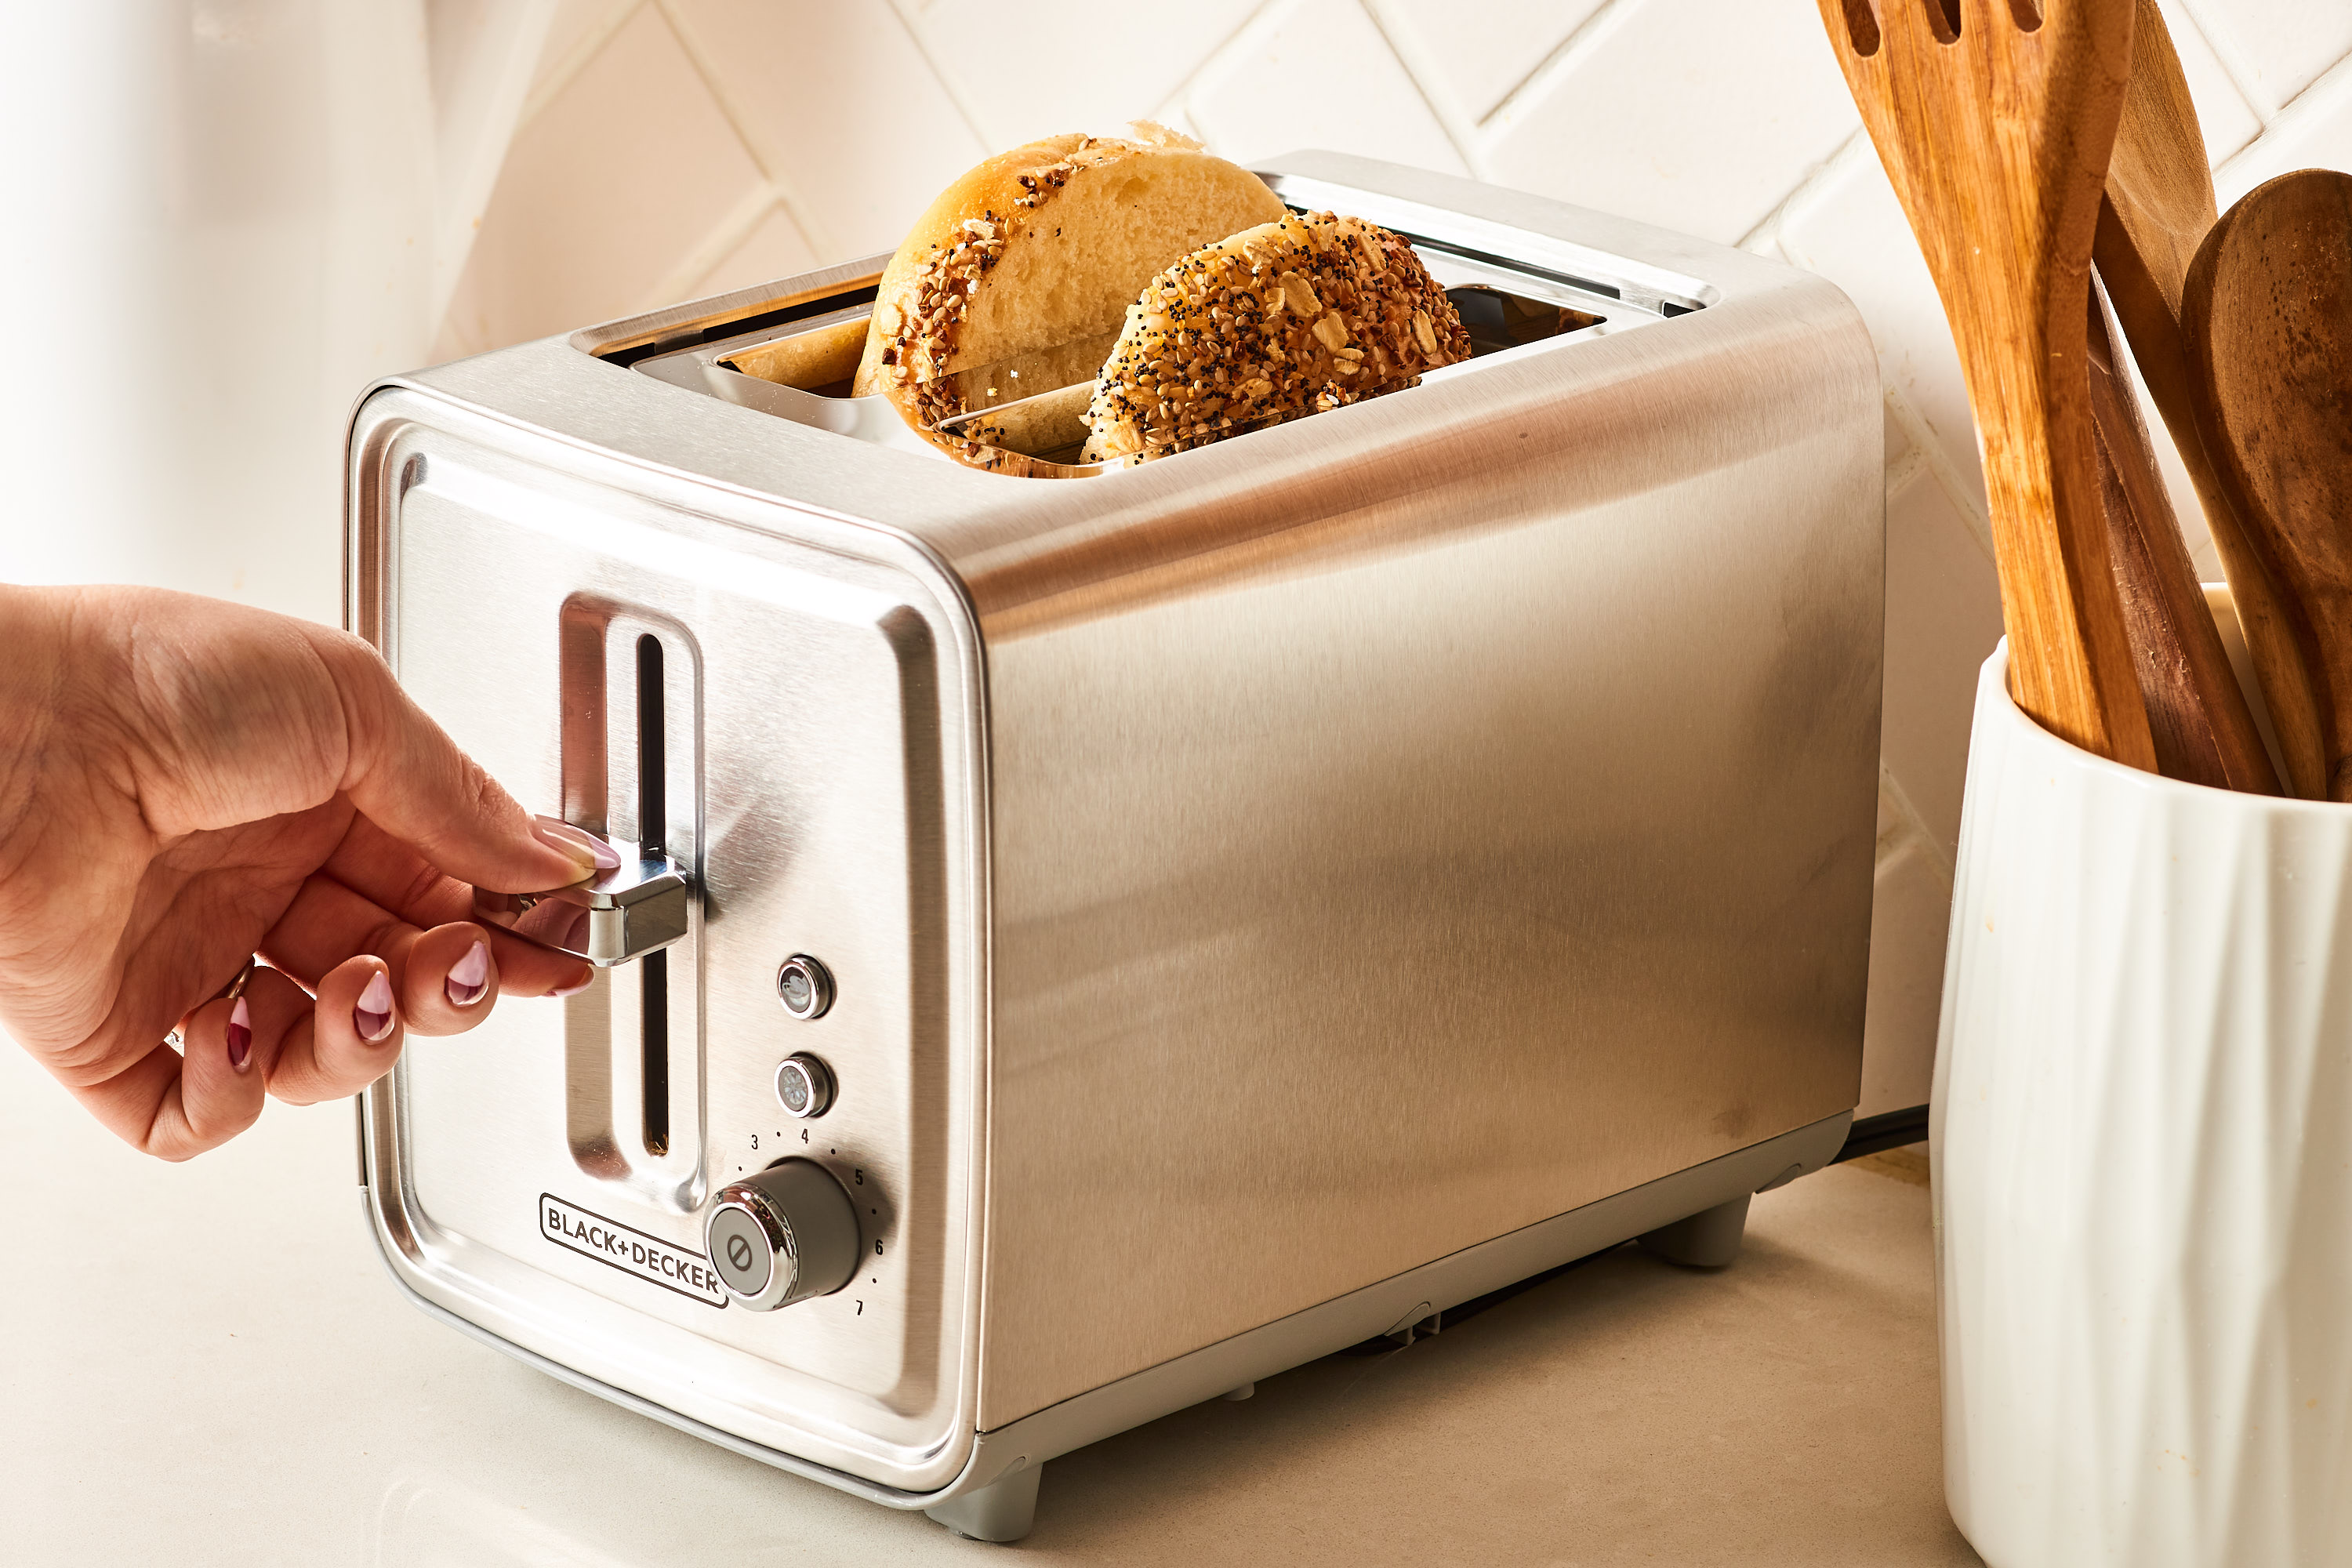 The Best Toasters To Buy in 2019 | Kitchn